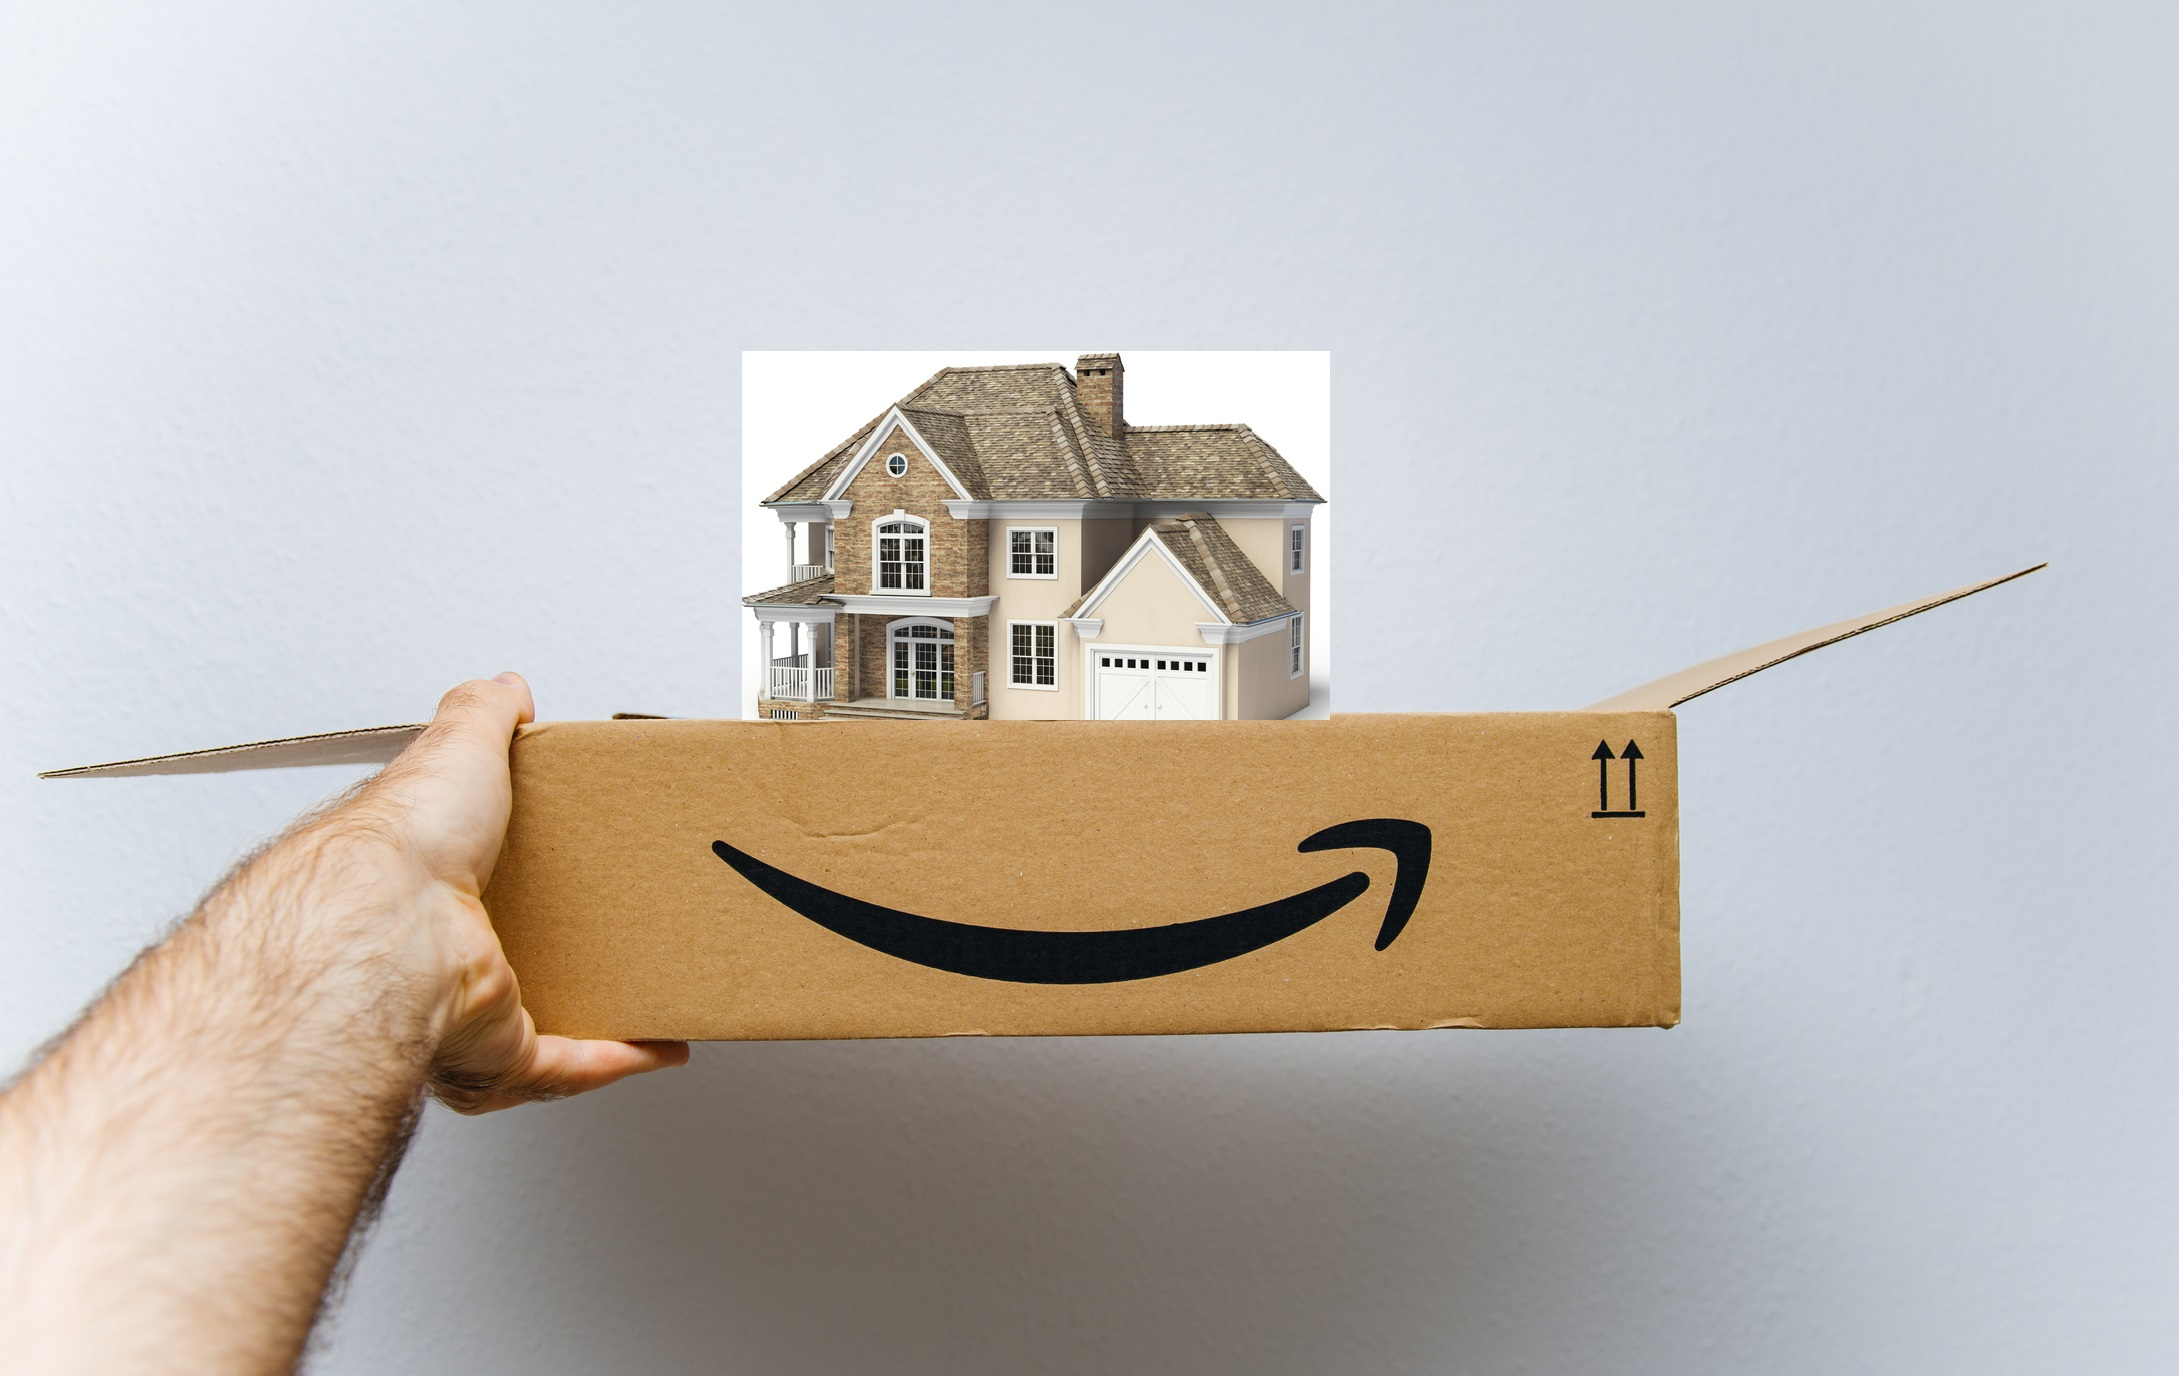 Amazon has entered the hombuying arena via TurnKey, a new program created in collaboration with Realogy Holdings Corp.